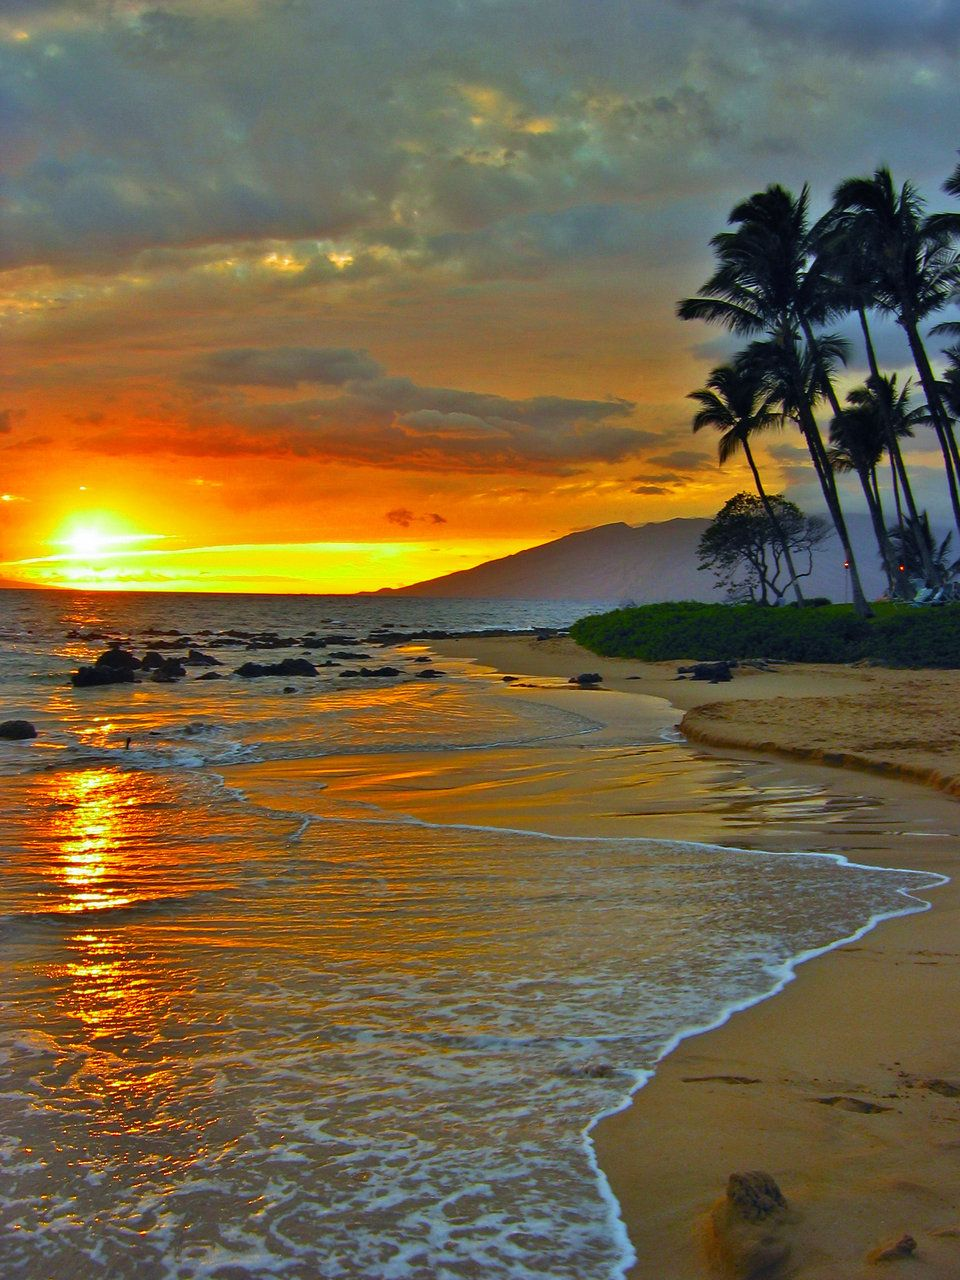 Sun is going down at Maui, HI